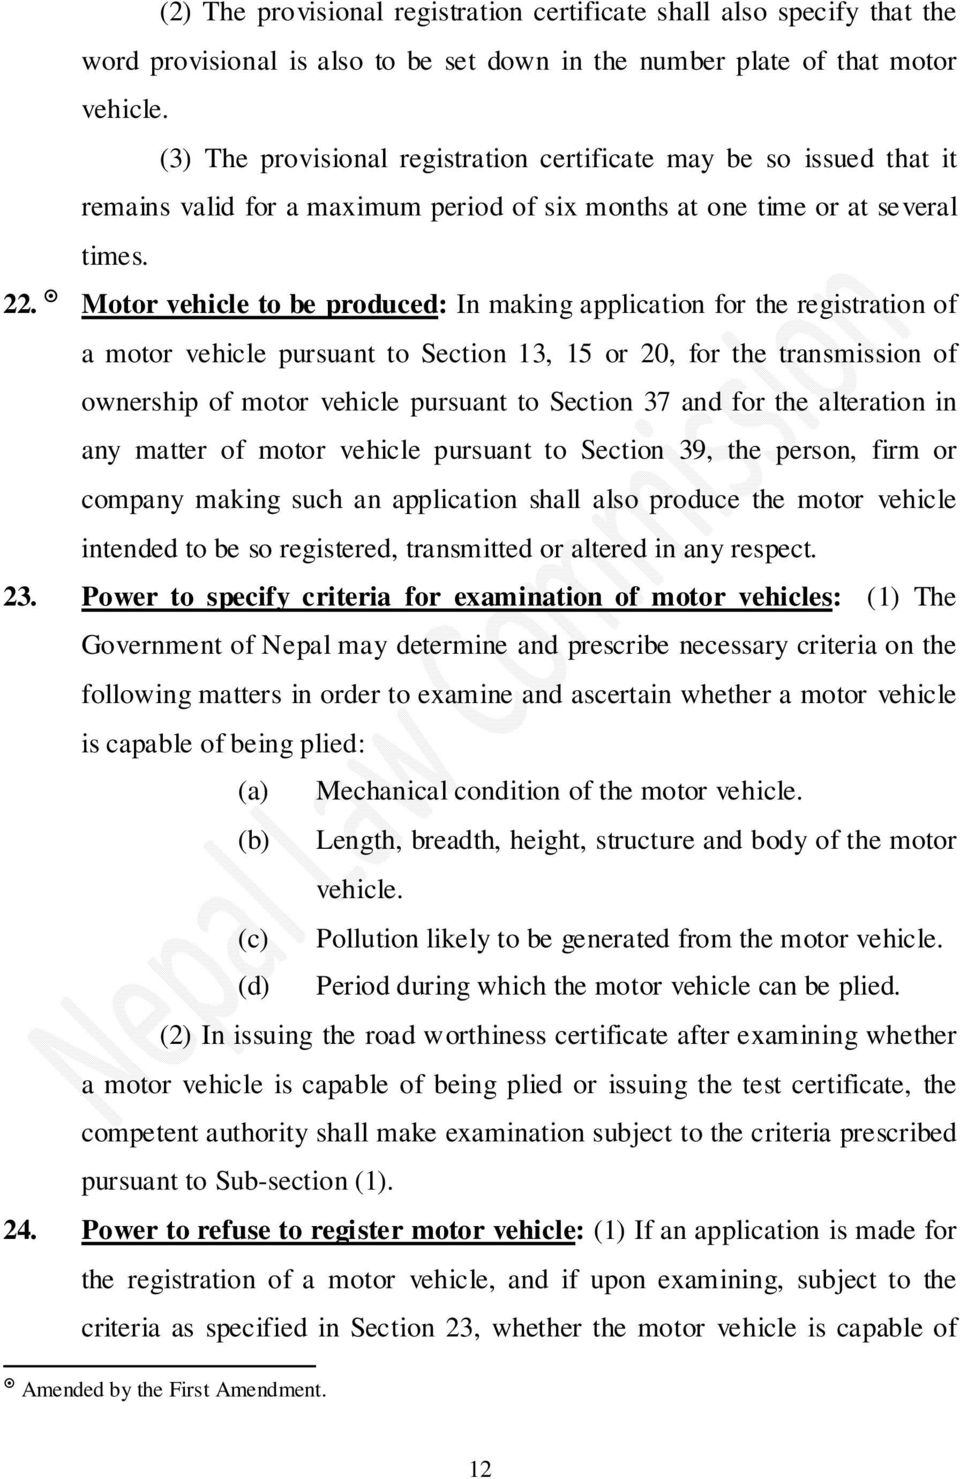 Motor vehicle to be produced: In making application for the registration of a motor vehicle pursuant to Section 13, 15 or 20, for the transmission of ownership of motor vehicle pursuant to Section 37